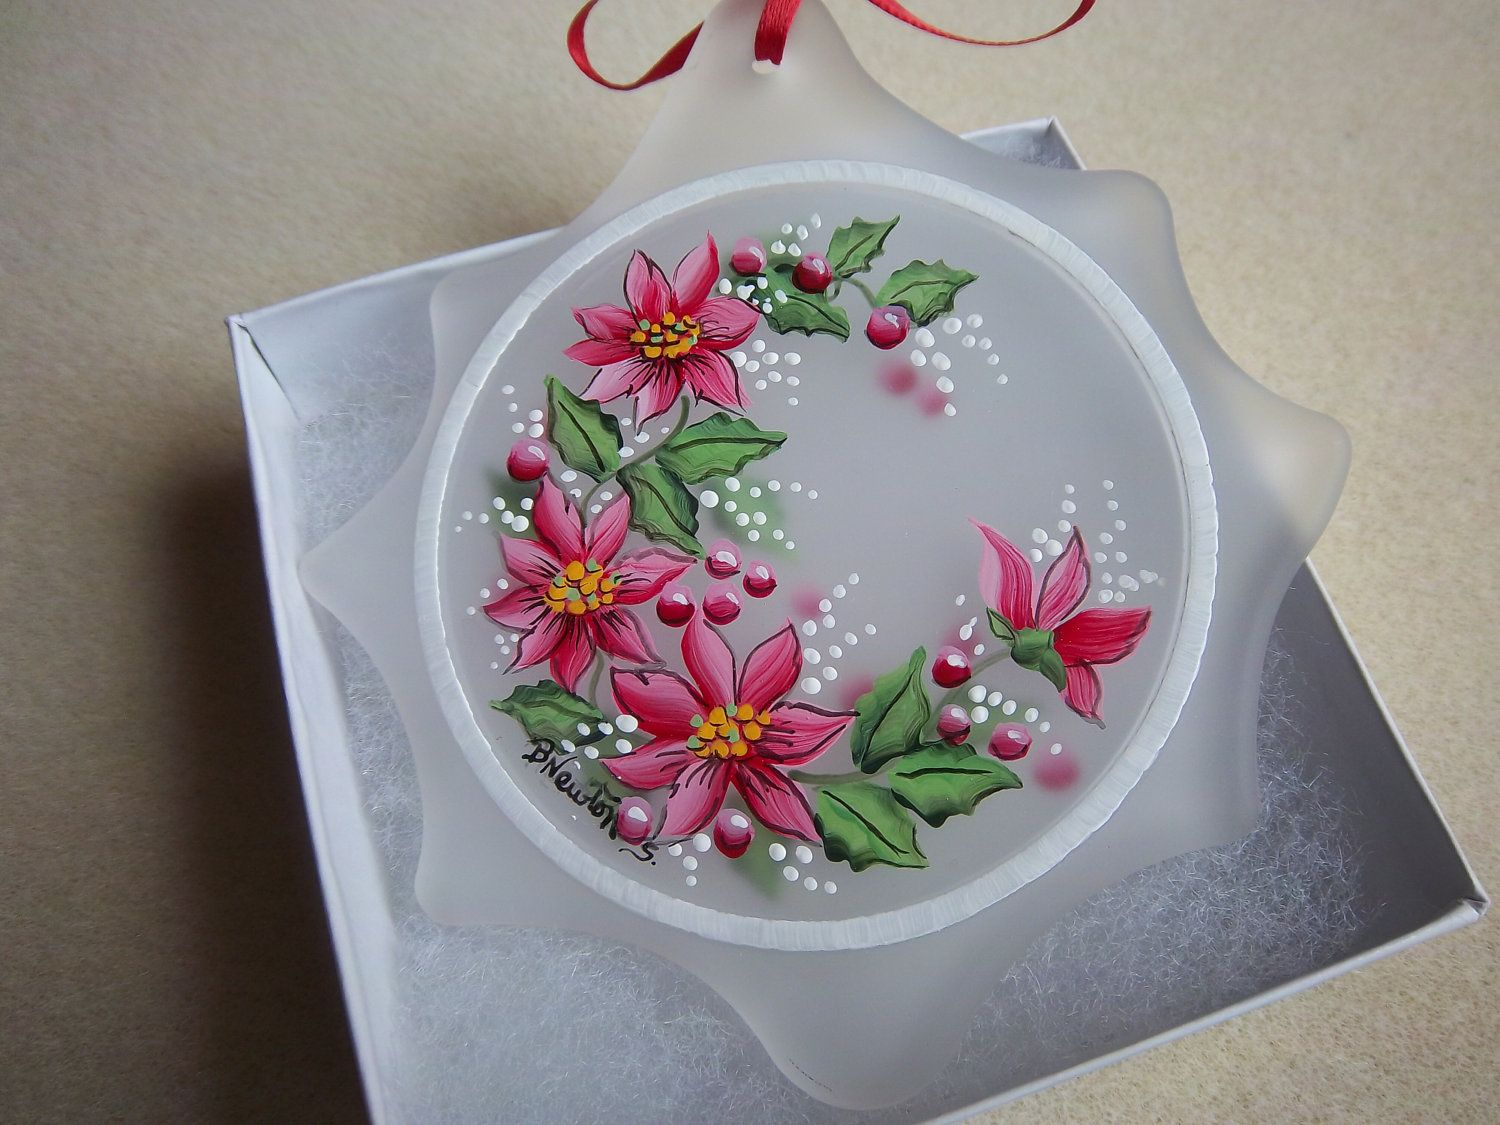 Flat glass ornaments - Satin Etched Flat Glass Ornament I Ve Hand Painted With Reddish Pink Poinsettia It S Painted On The Front And The Back Which Adds Dimension